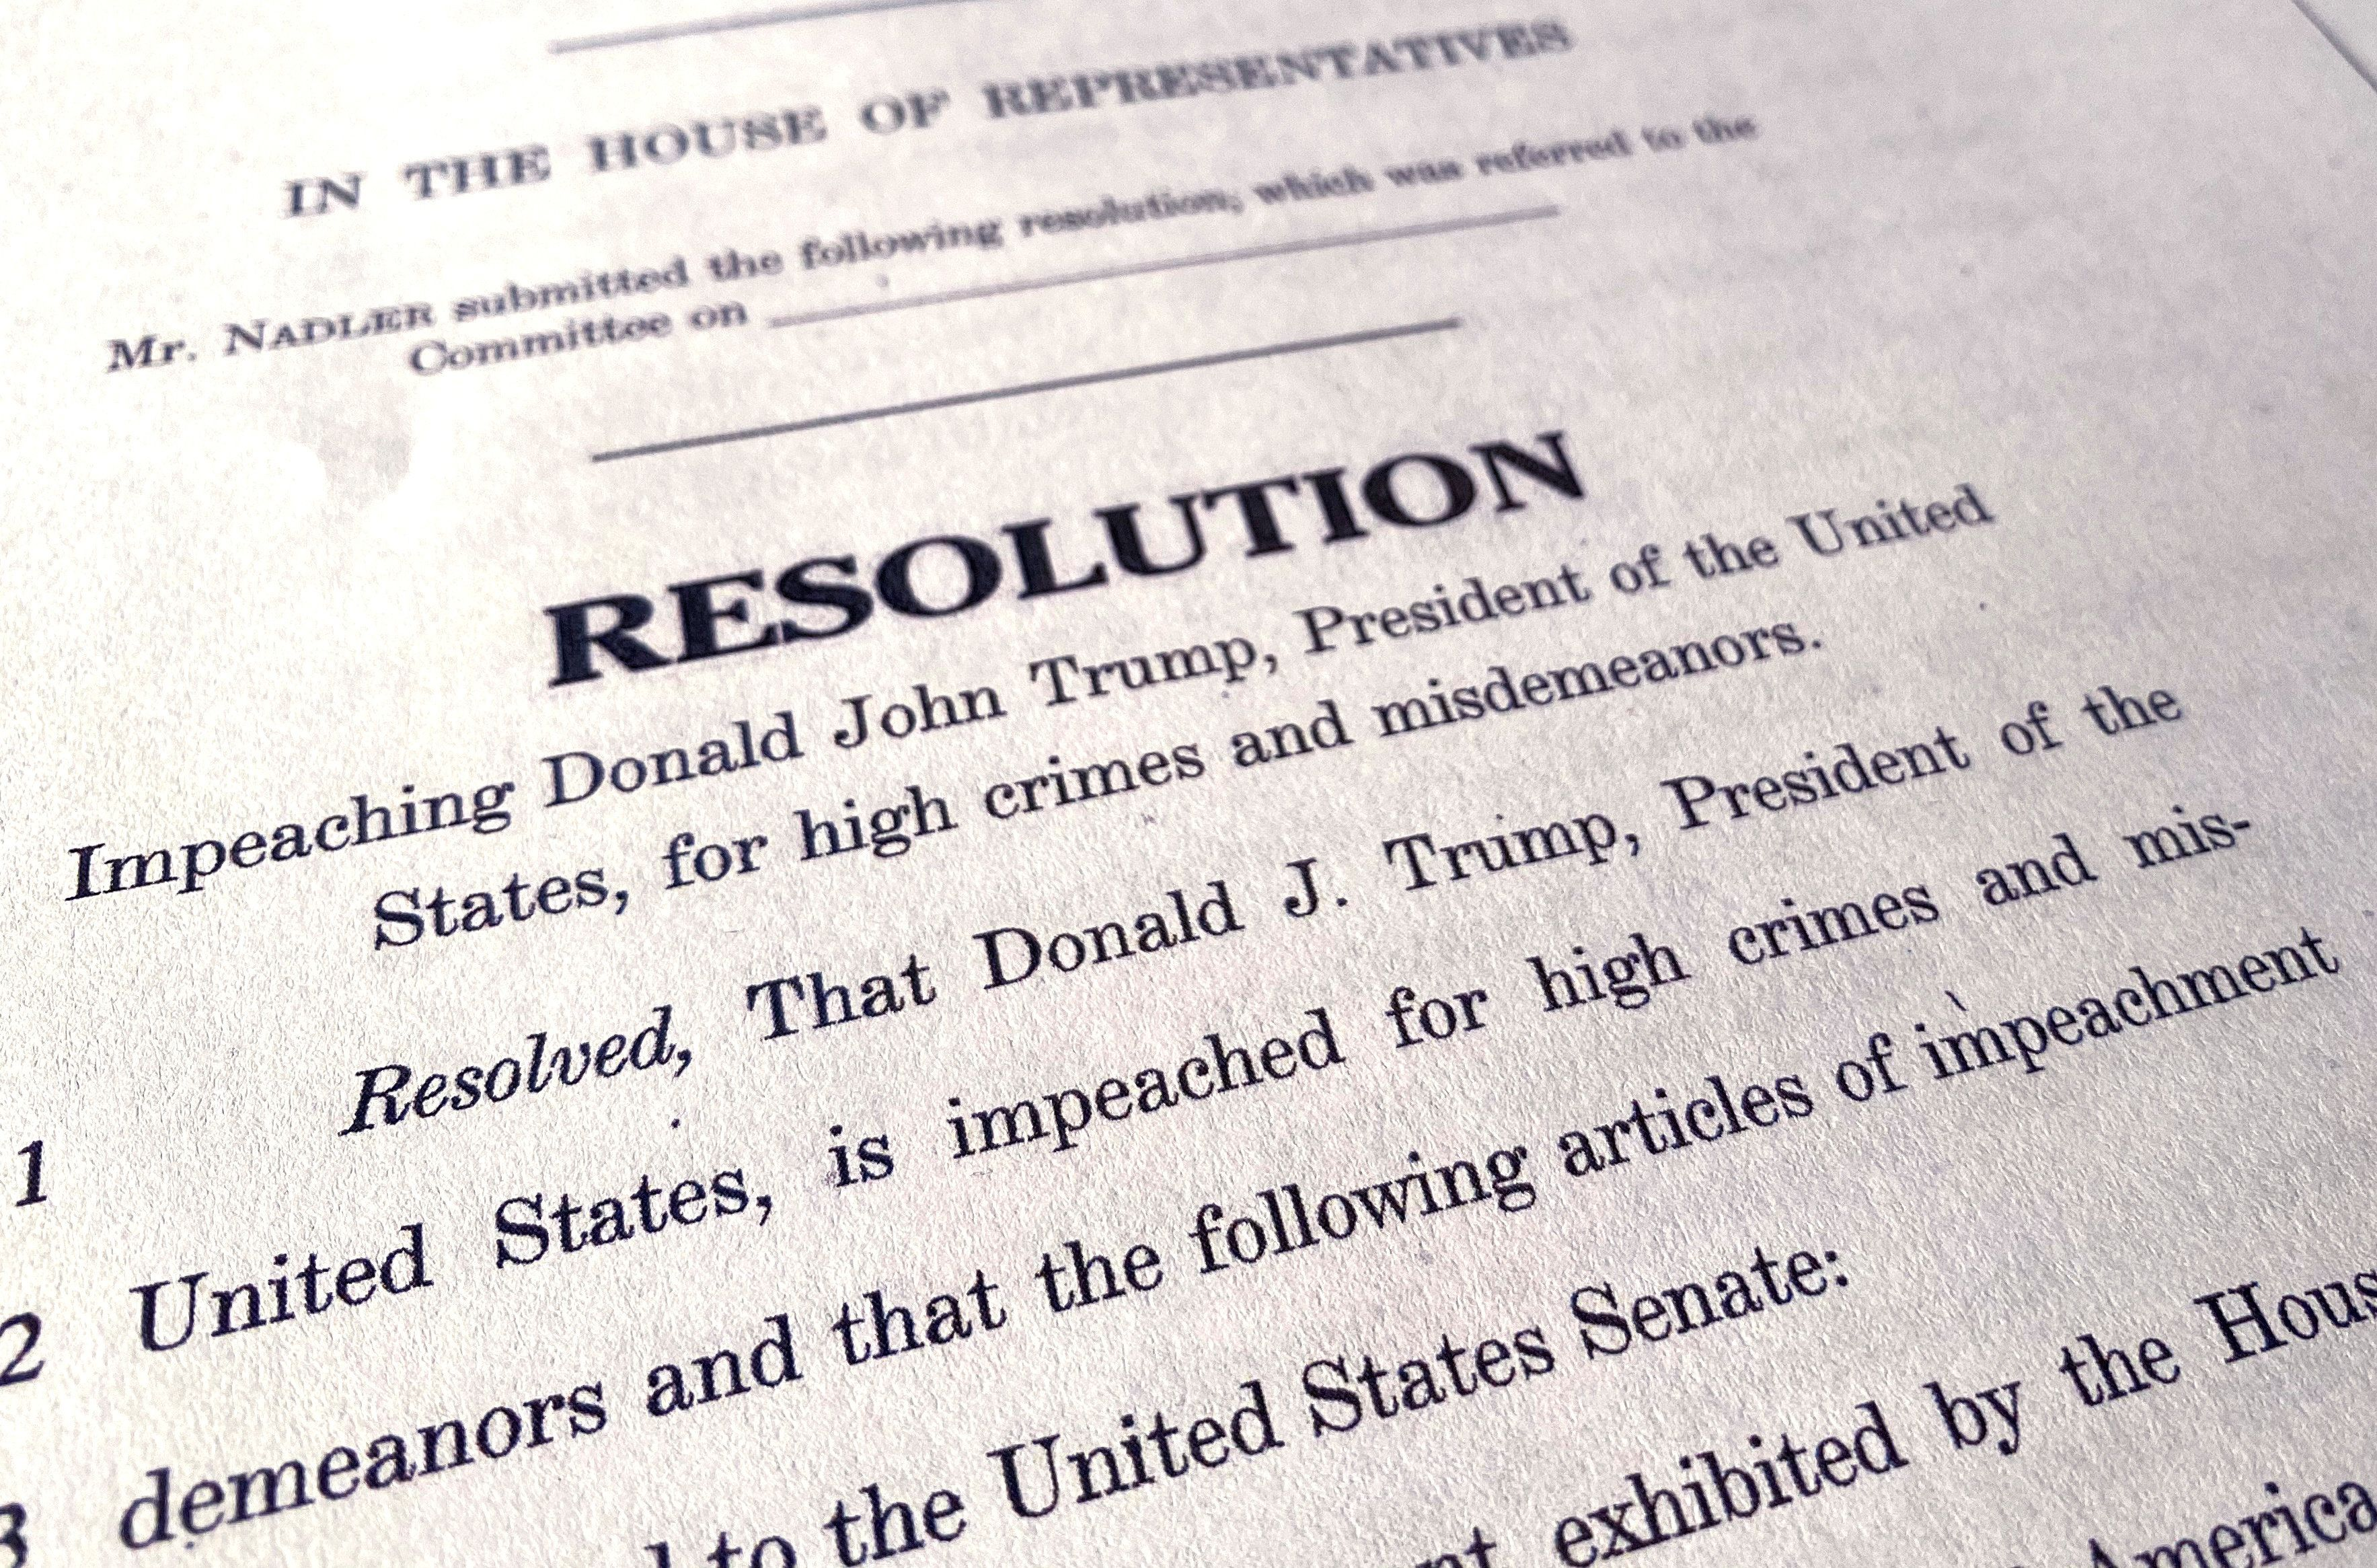 Articles of Impeachment! Now what?